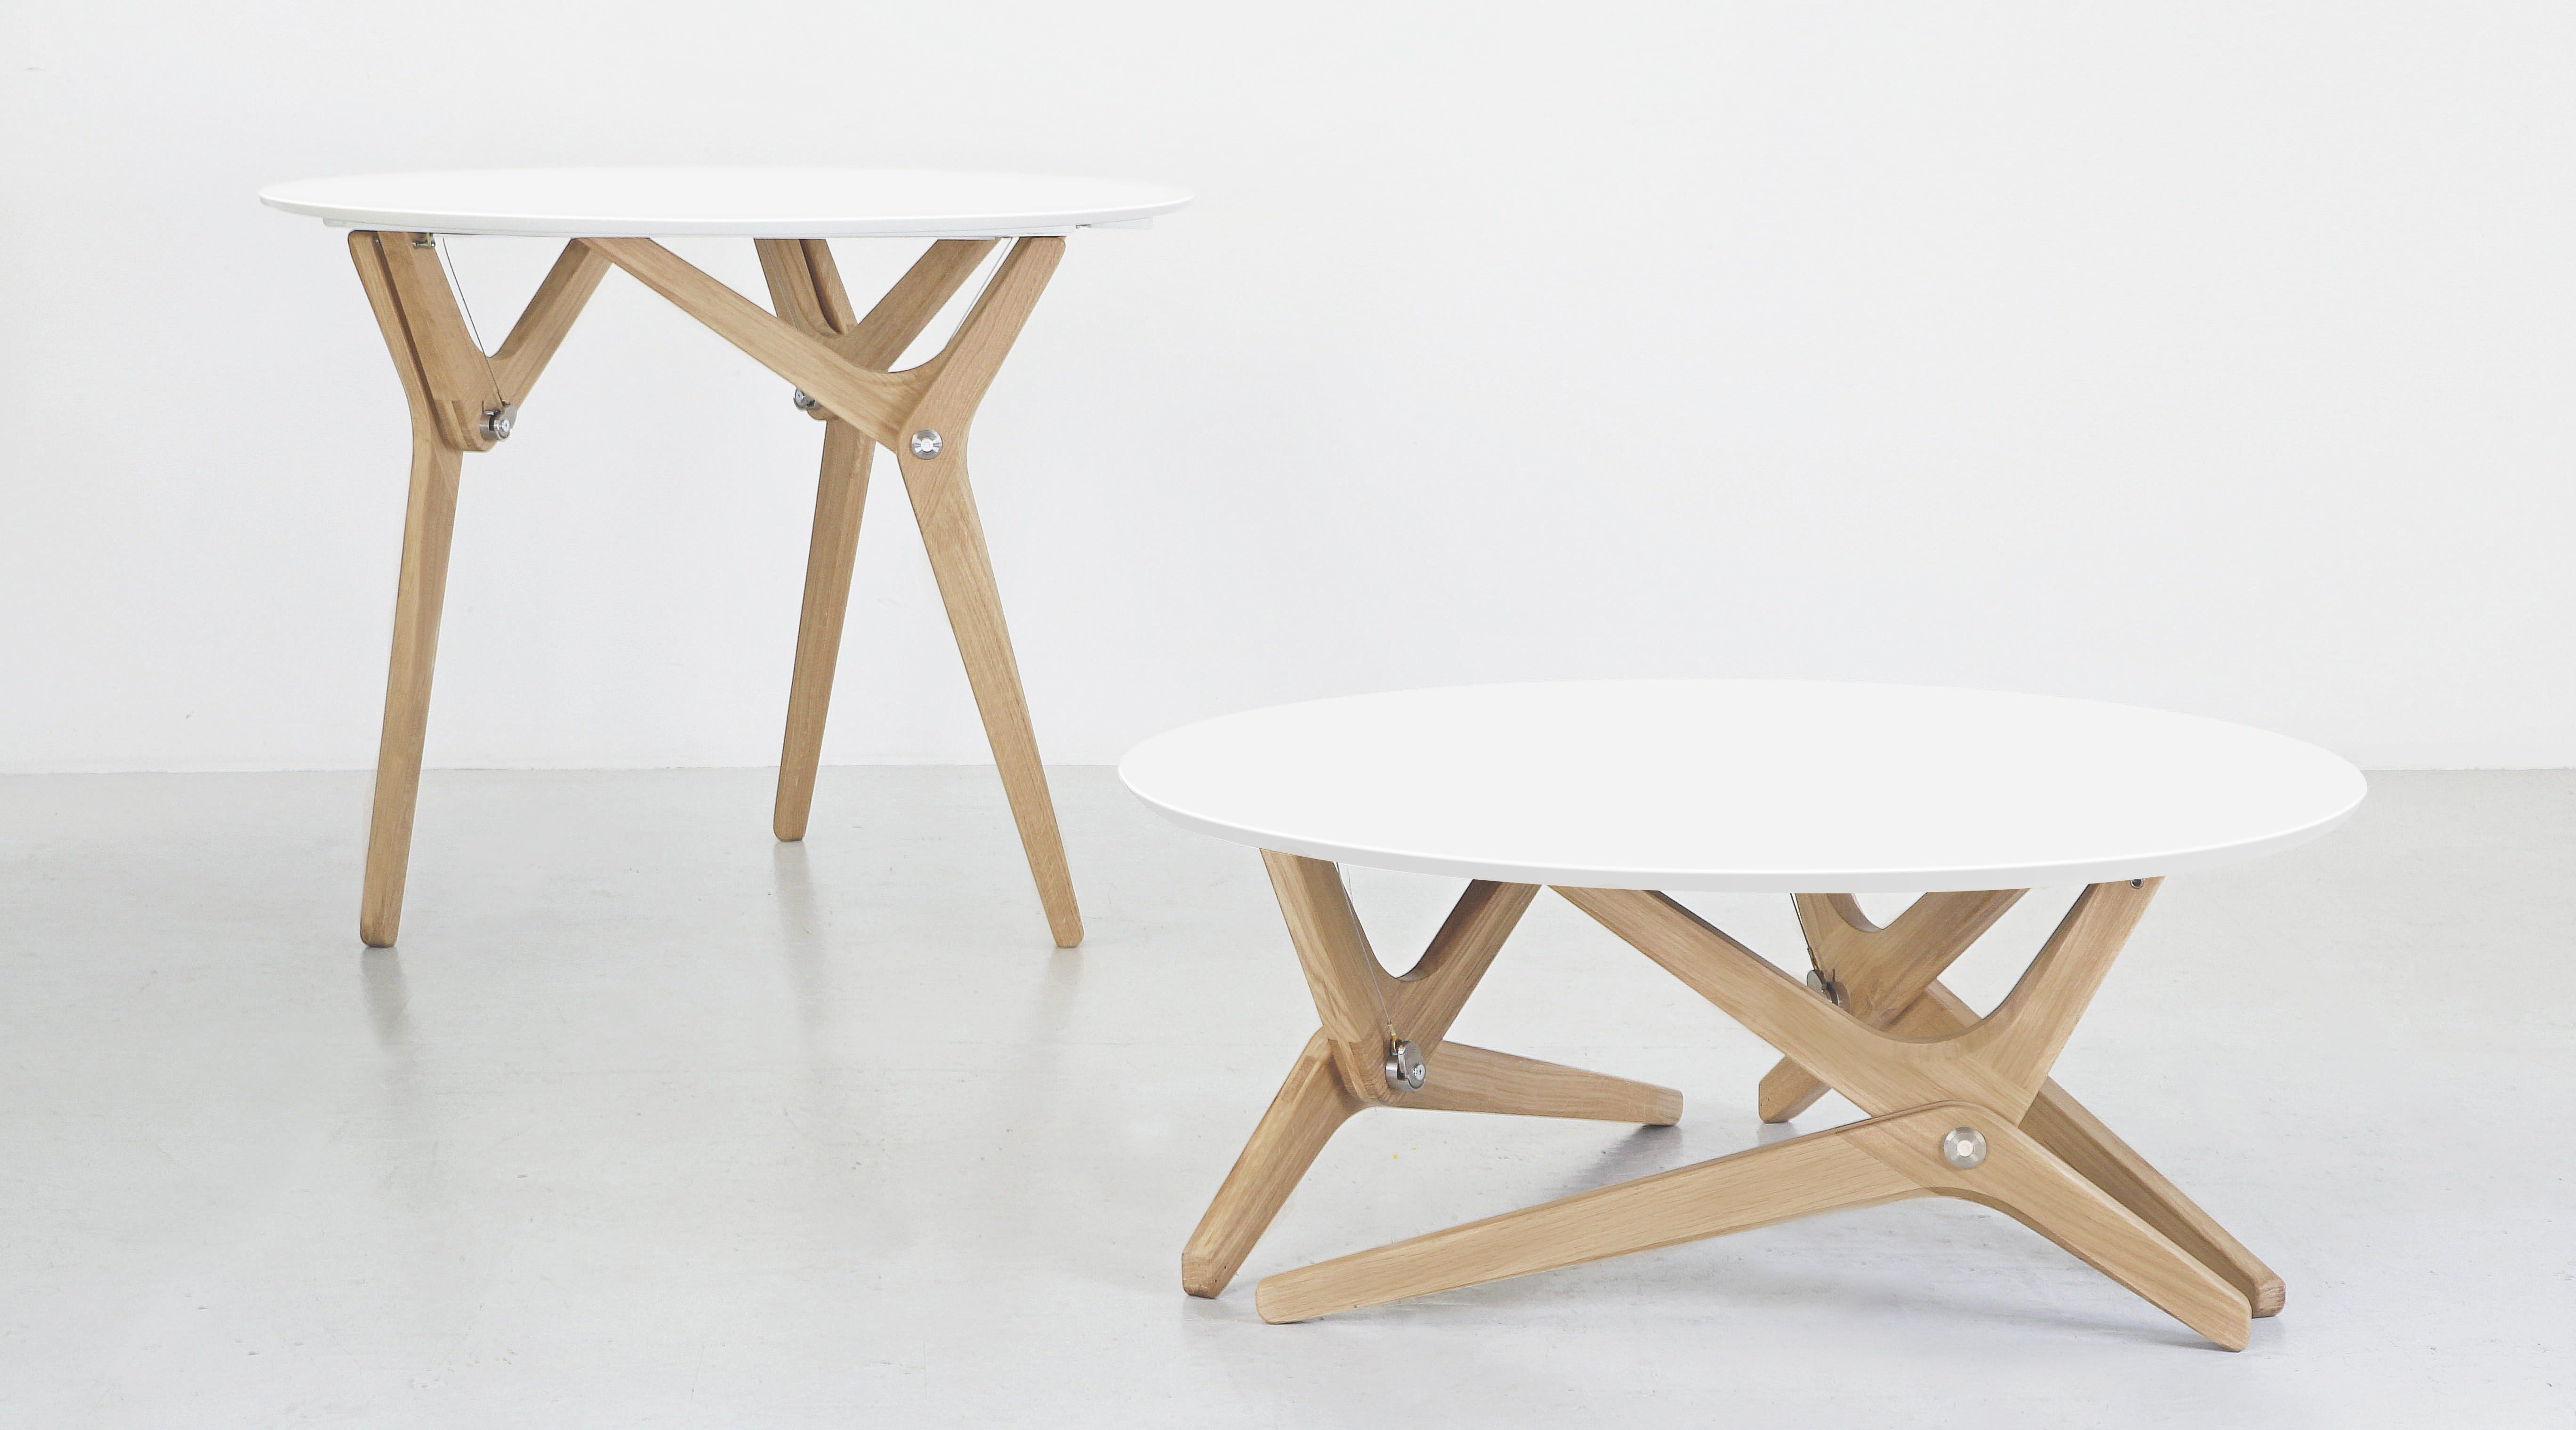 Boulon Blanc Modern Table Design Coffee Table Coffee Table Convert To Dining Table